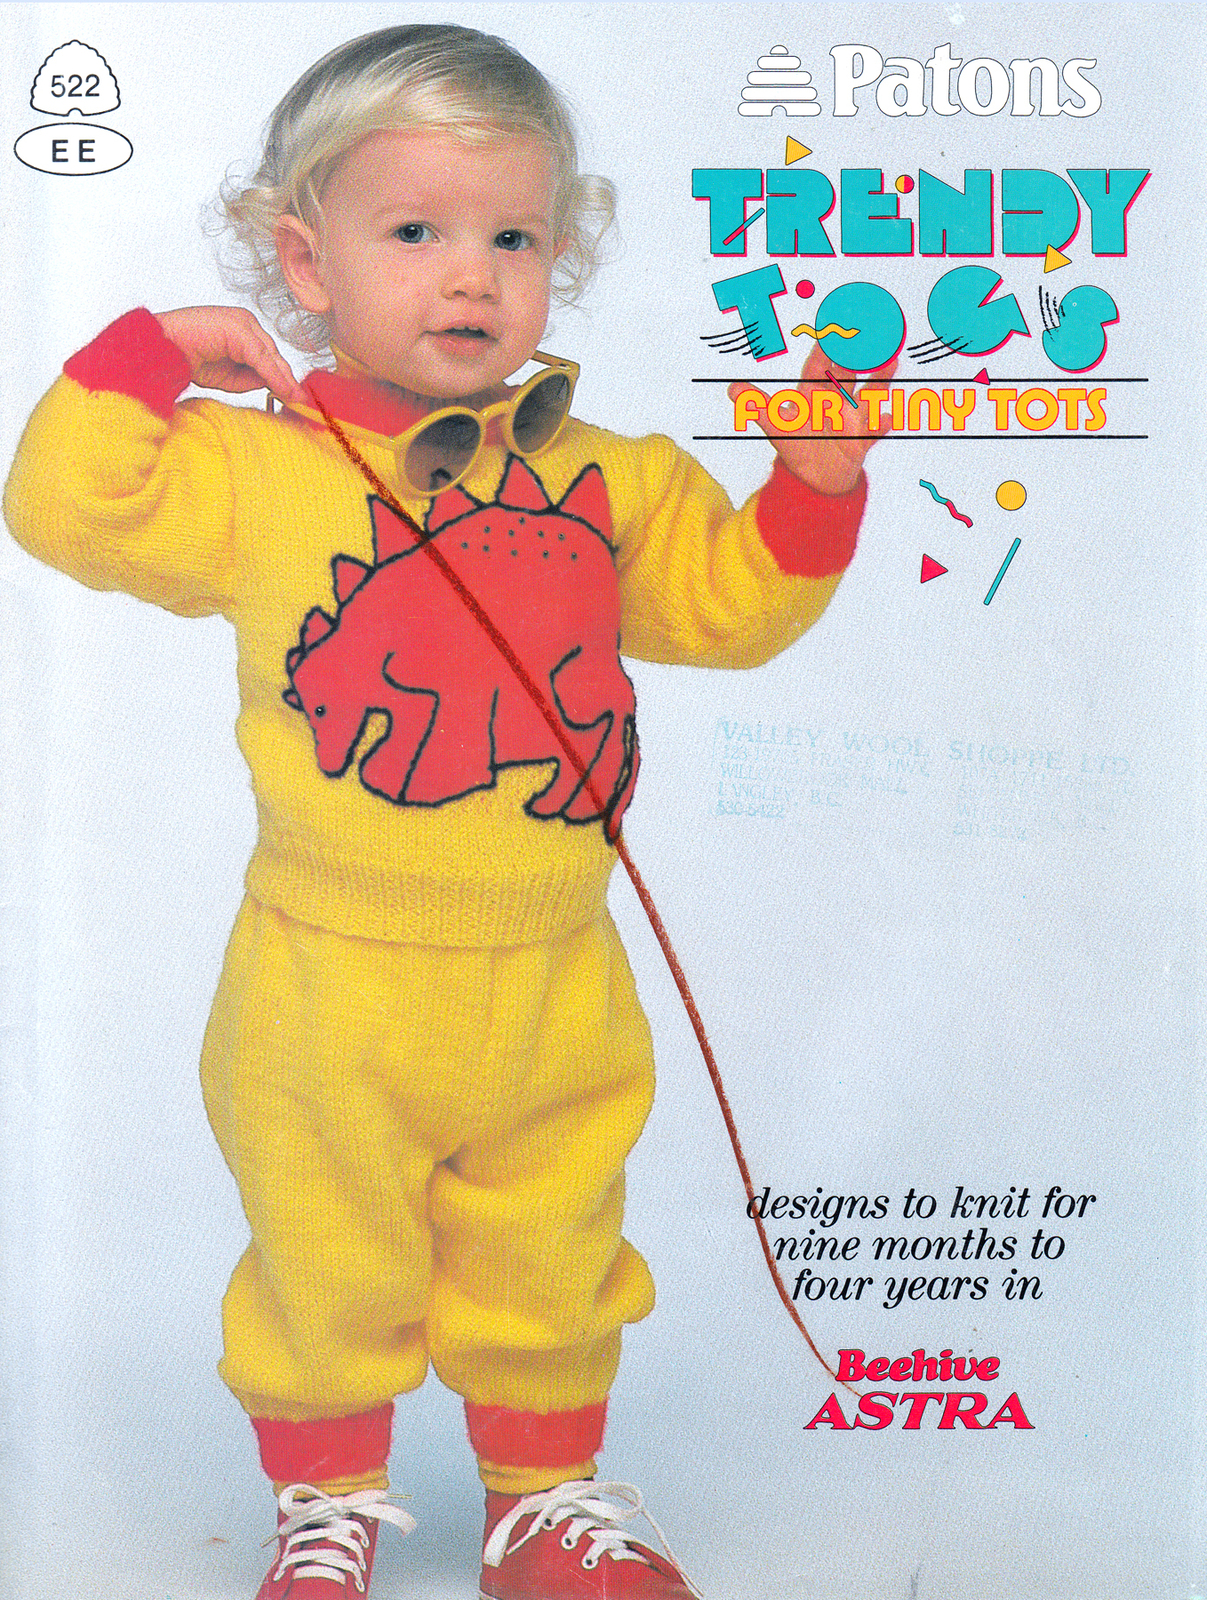 Primary image for PATONS TRENDY TOGS FOR TINY TOTS KNIT 9 MO. TO 4 YEARS DINO FROG LADYBUGS 522